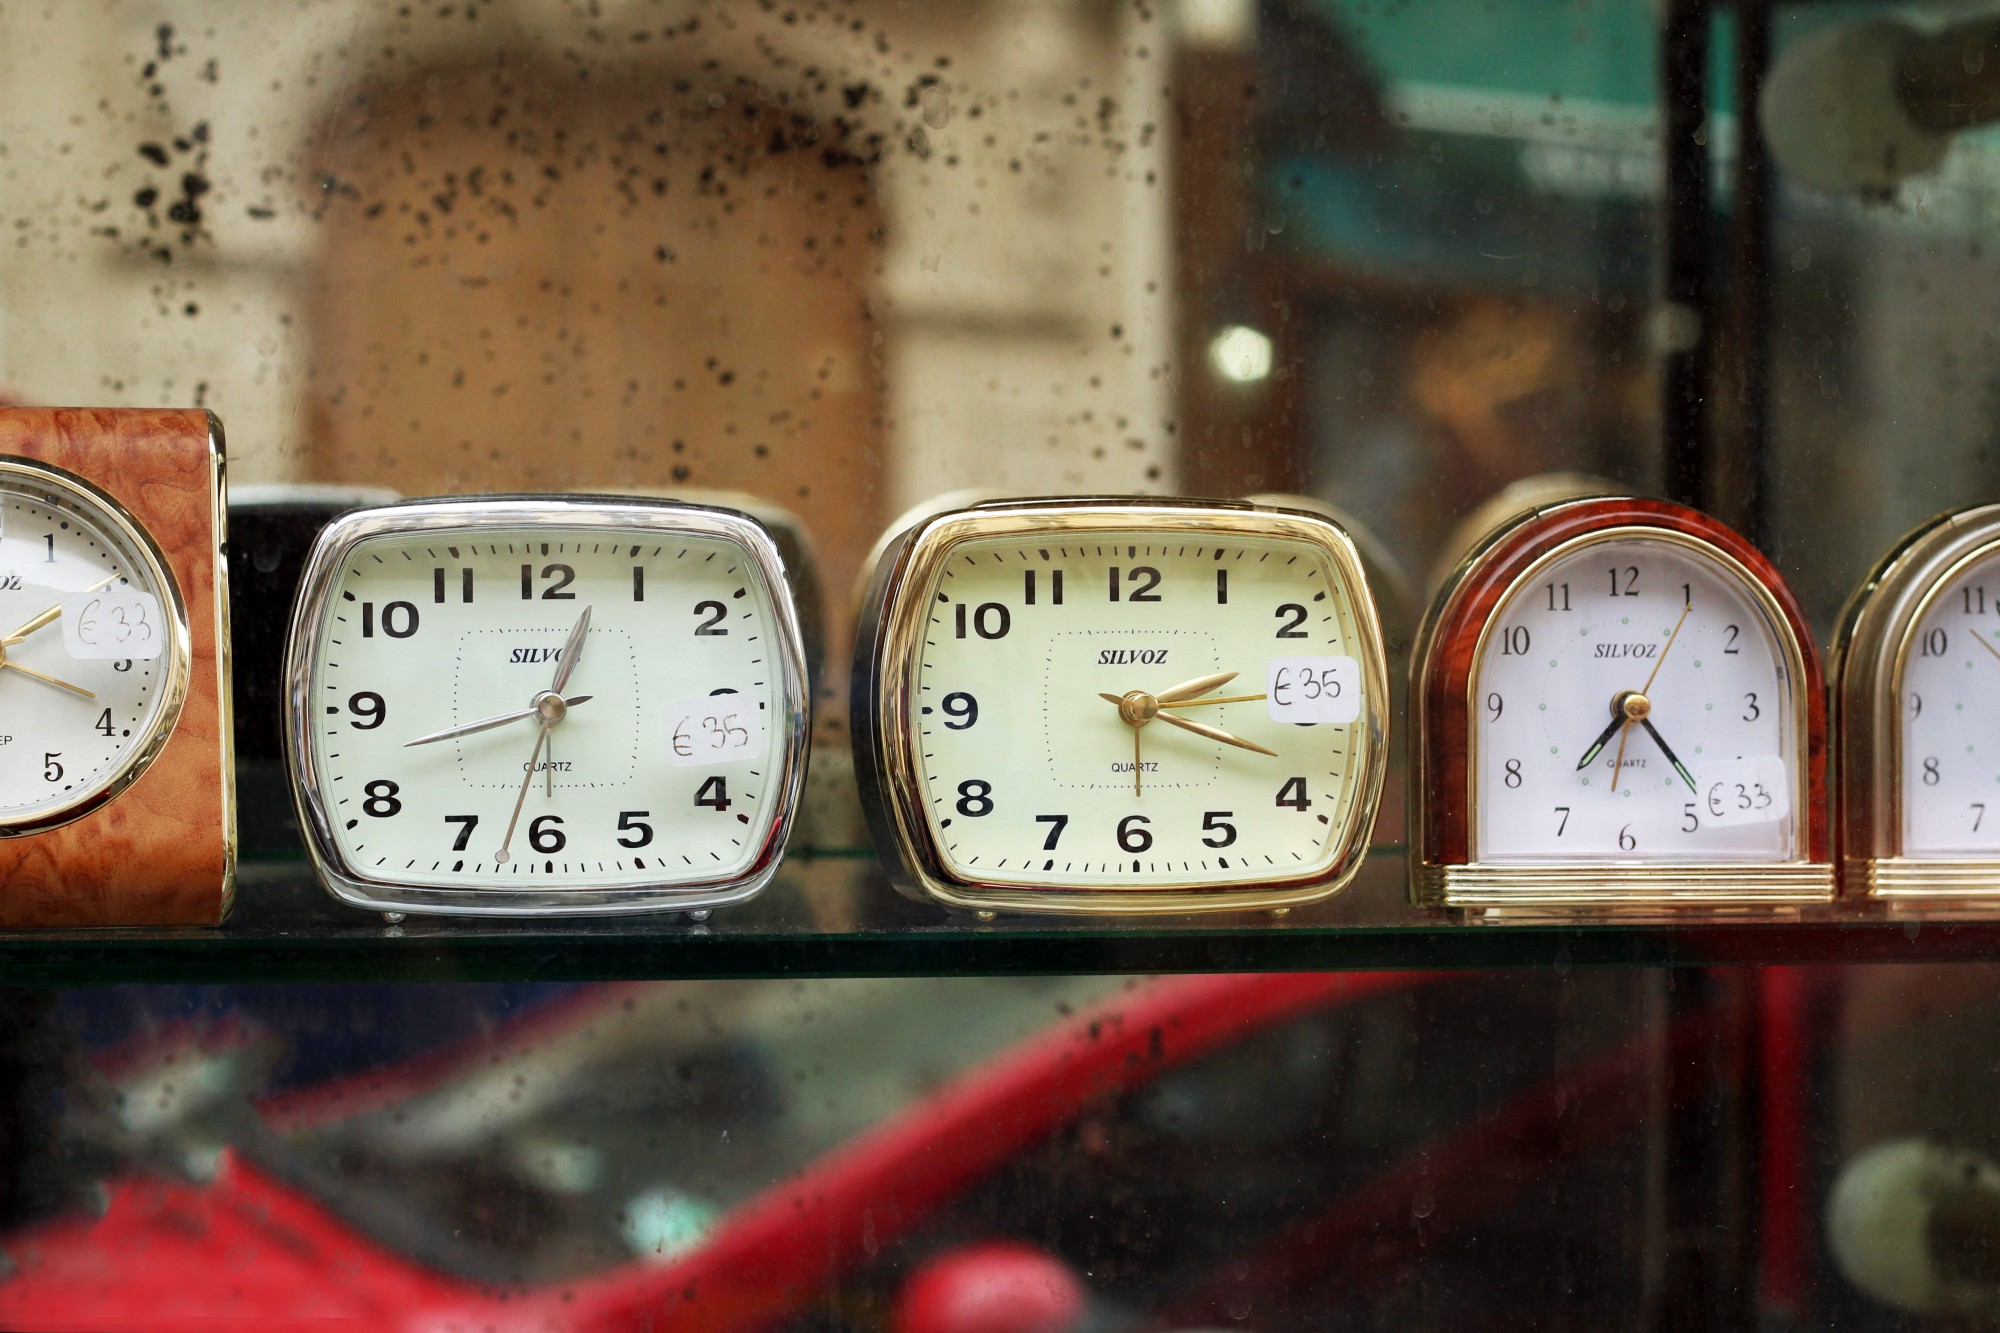 The perception of time varies and can be overestimated by extended resting phases.